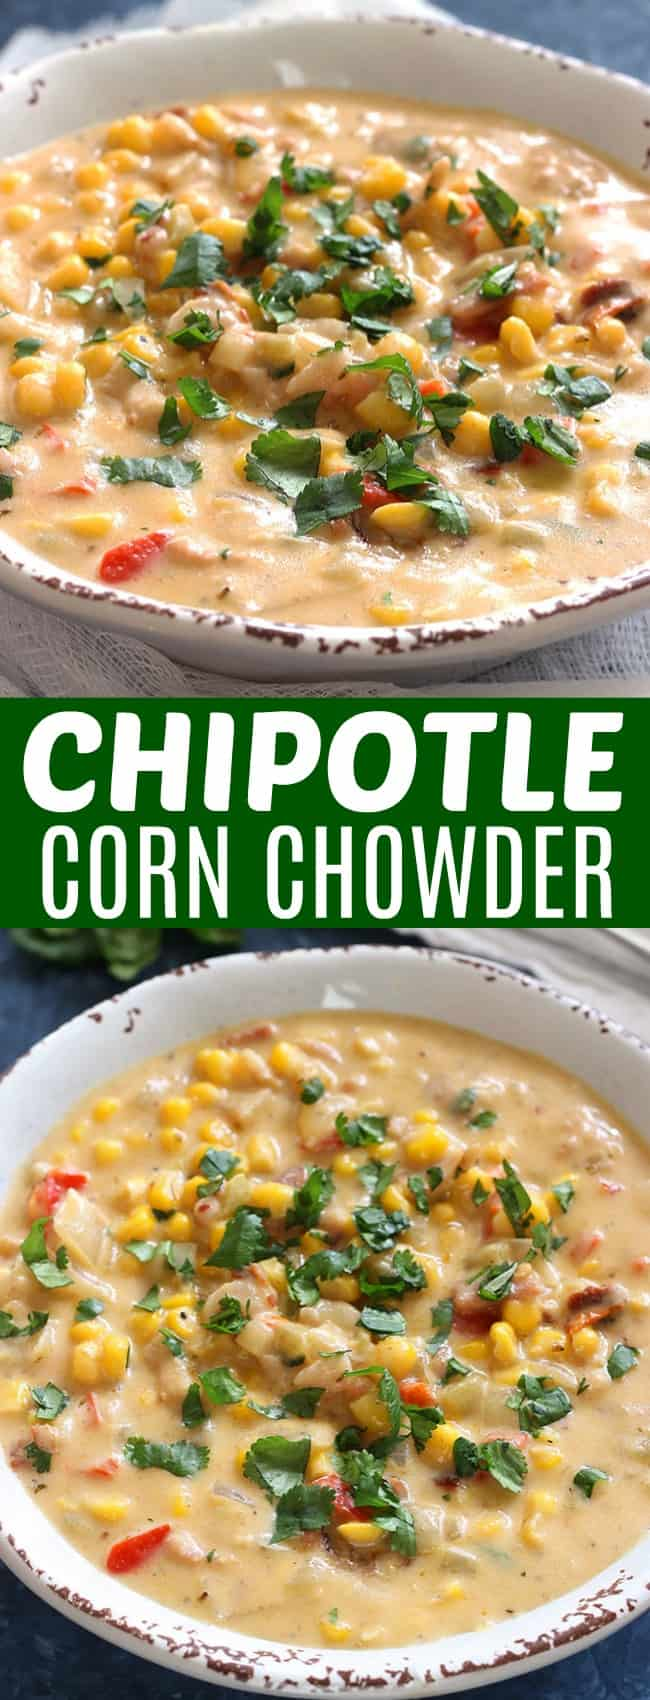 A bowl chipotle corn chowder with cilantro on top